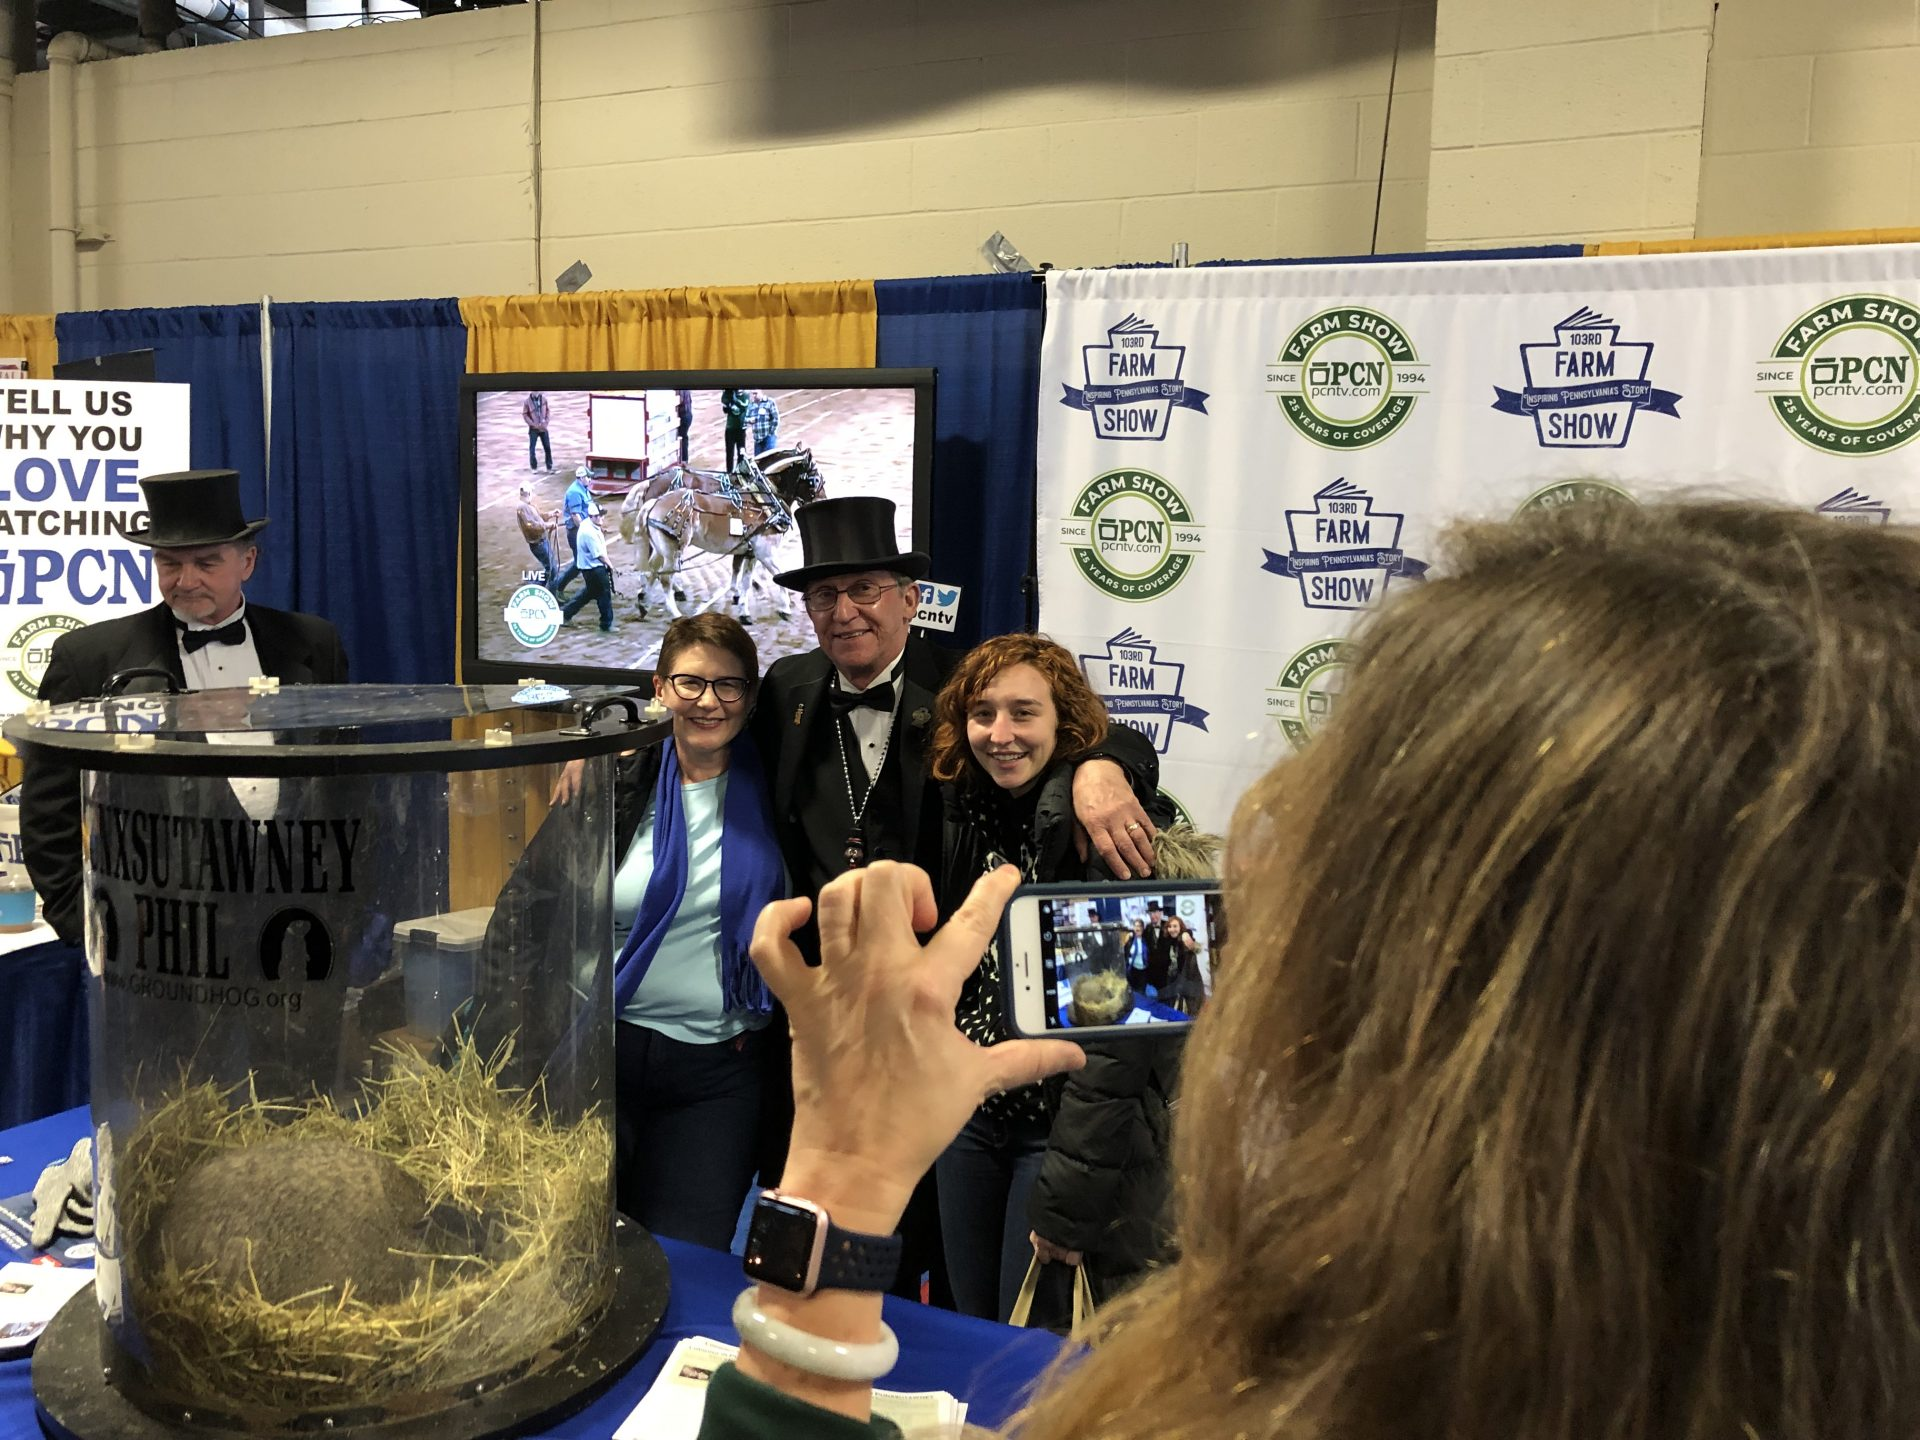 Visitors to the Pennsylvania Farm Show pose for a picture with a member of the Inner Circle and Punxsutawney Phil on Jan. 8, 2019.